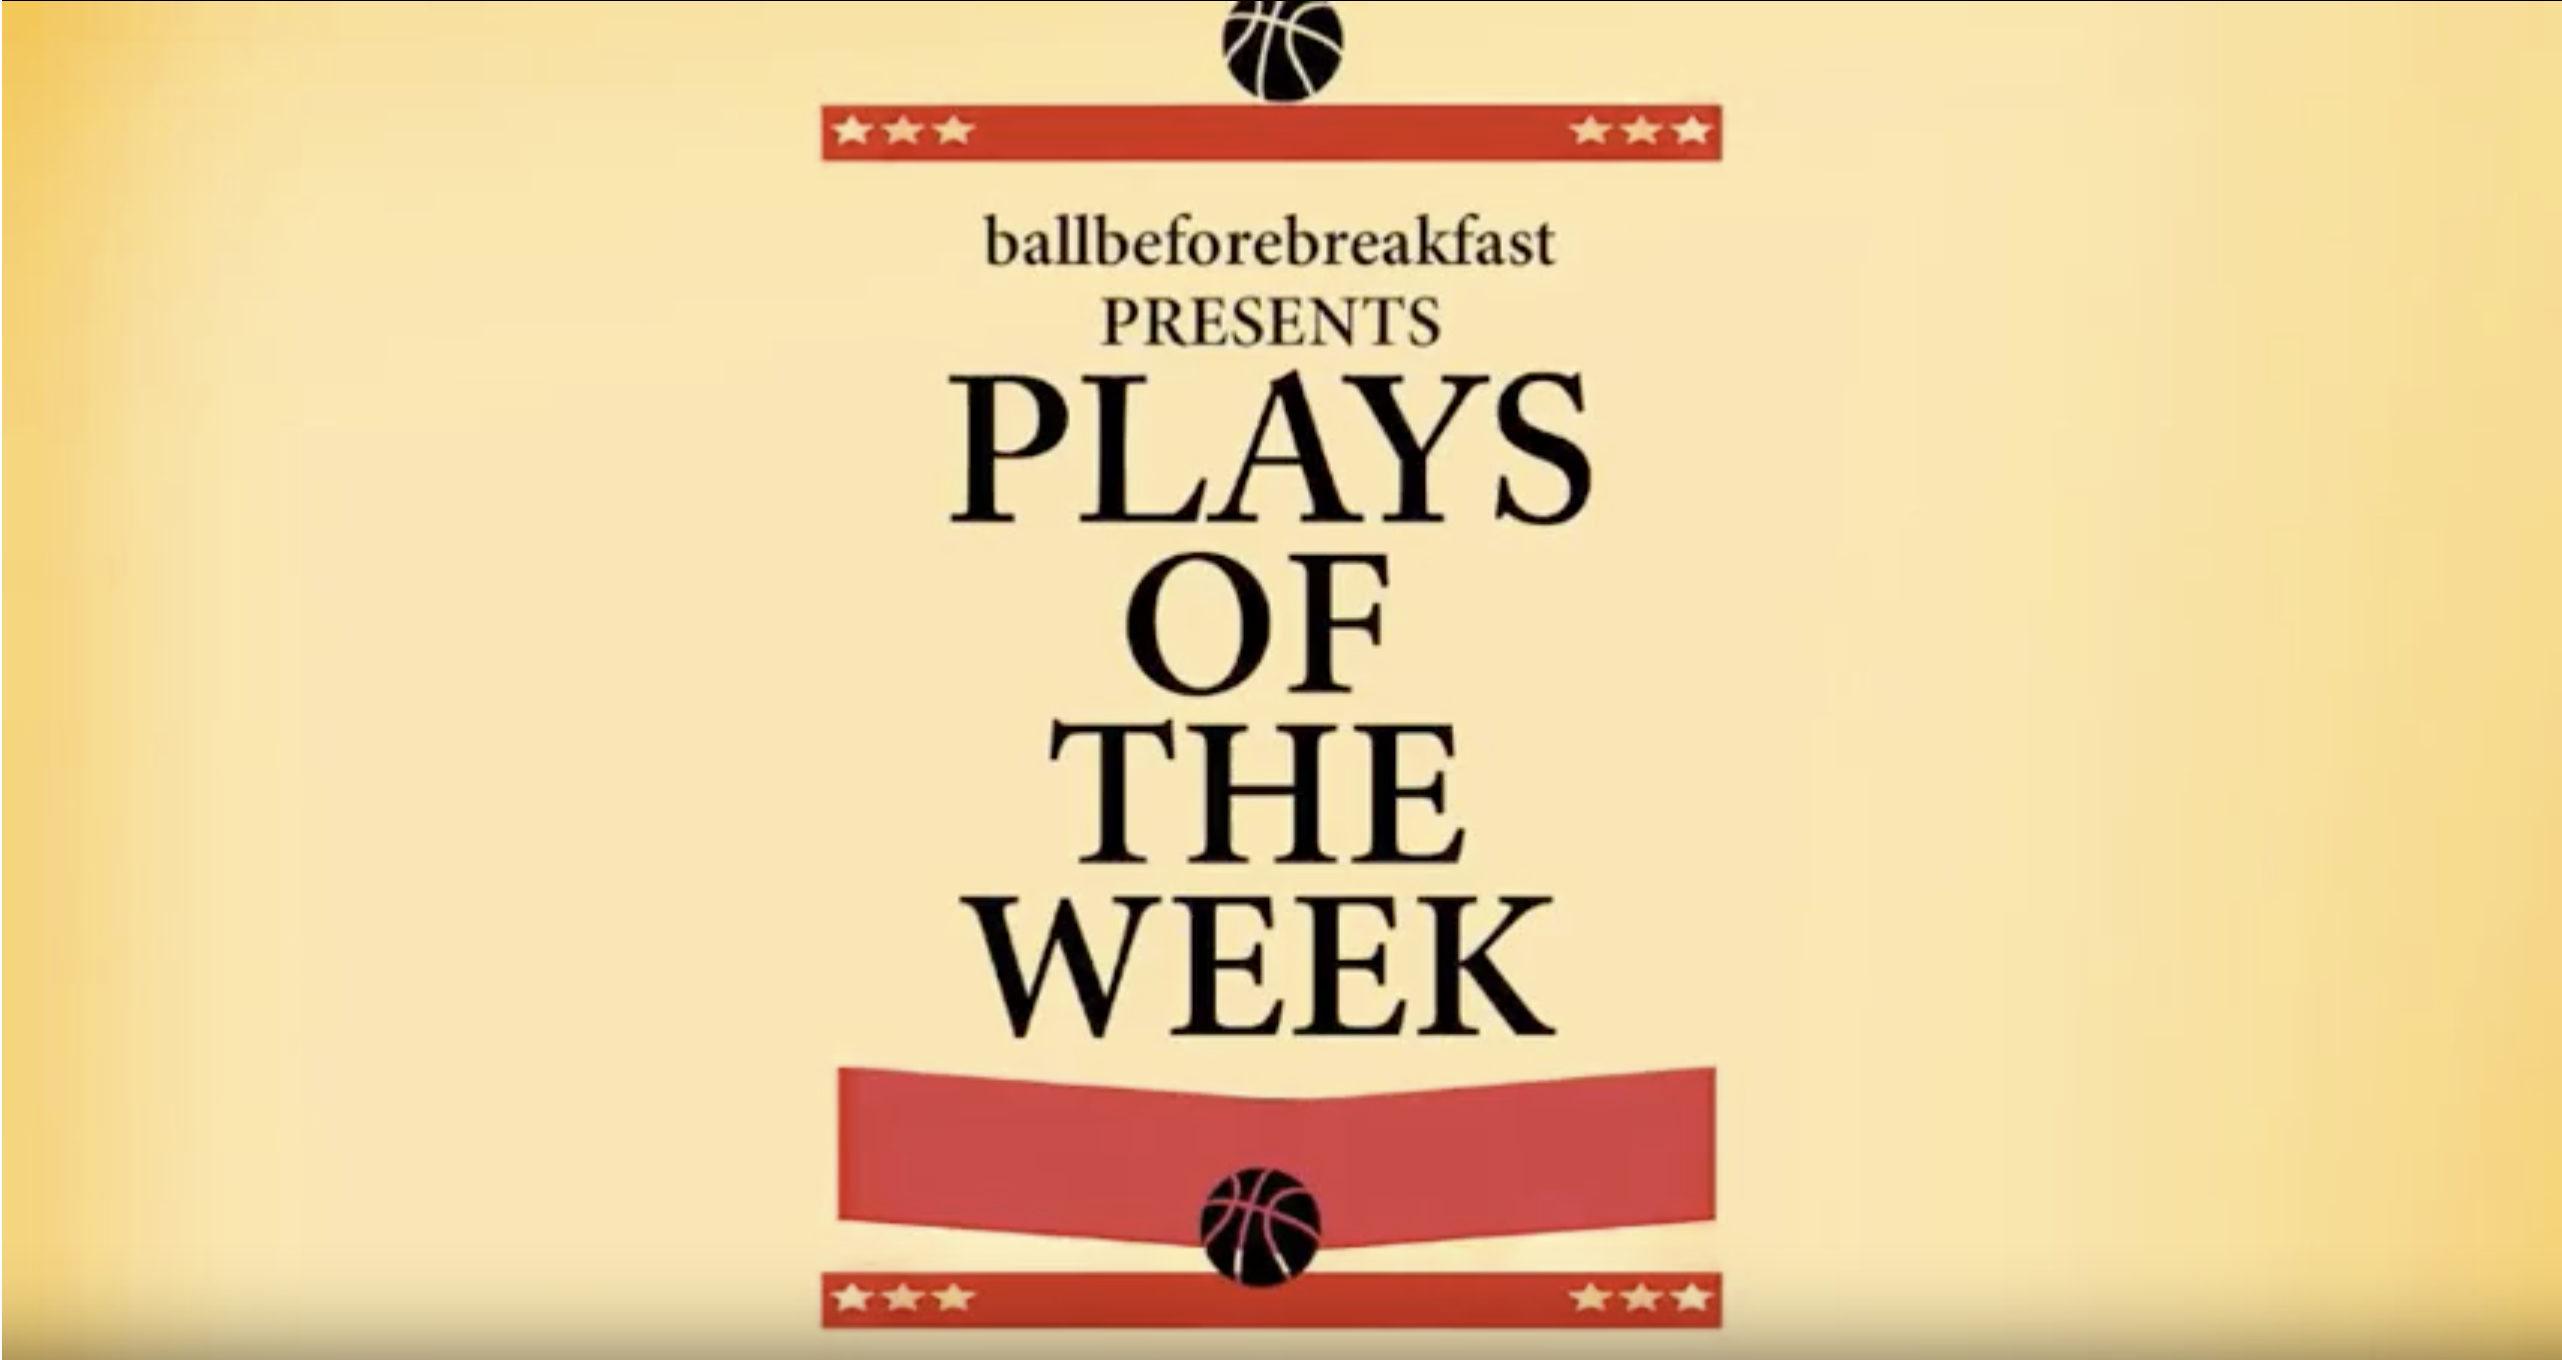 Plays of the week – NYC